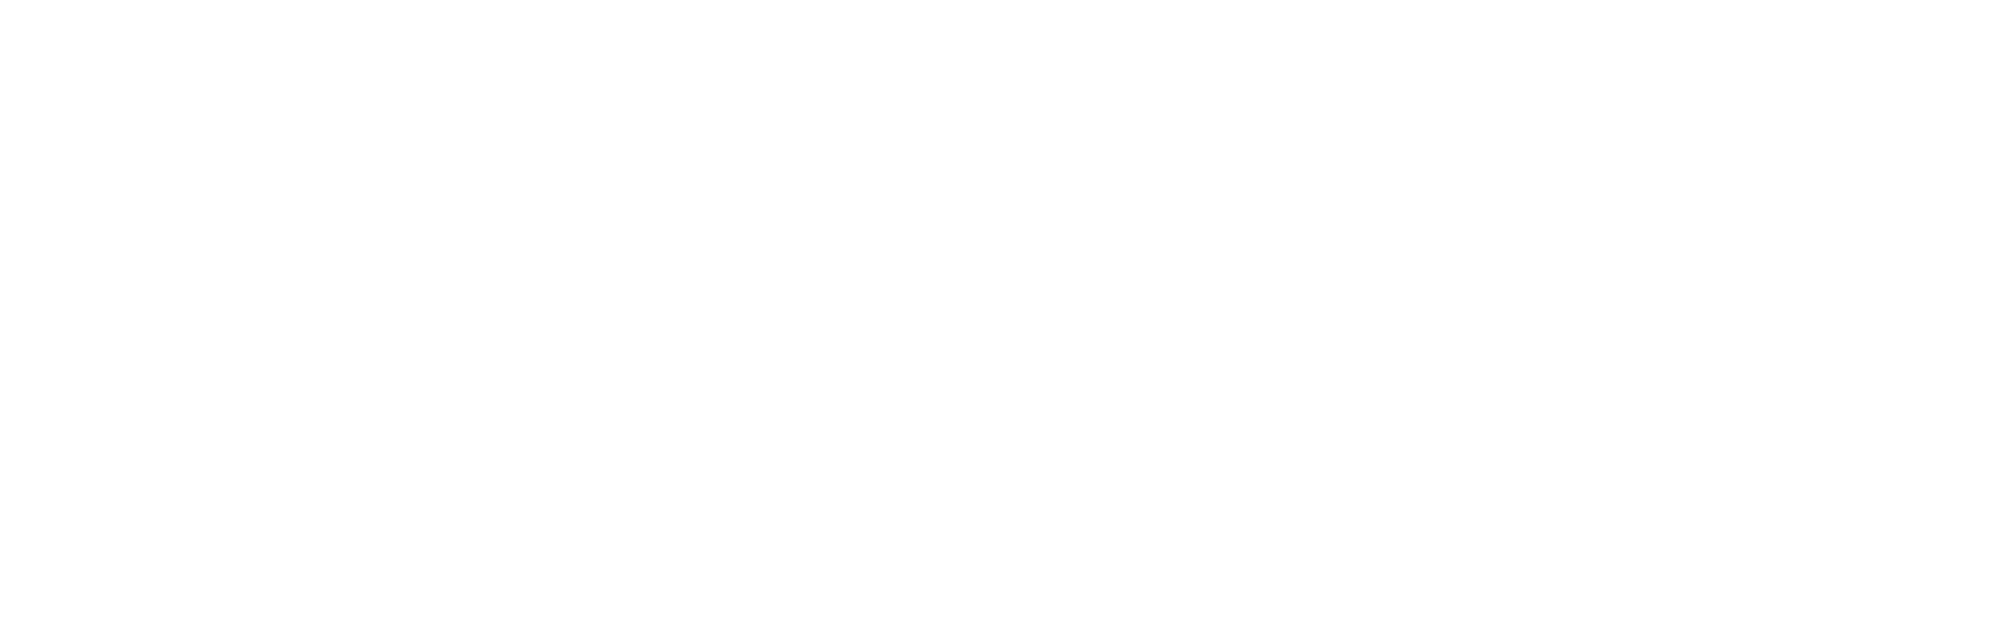 0n0w_awards_July19_web.png